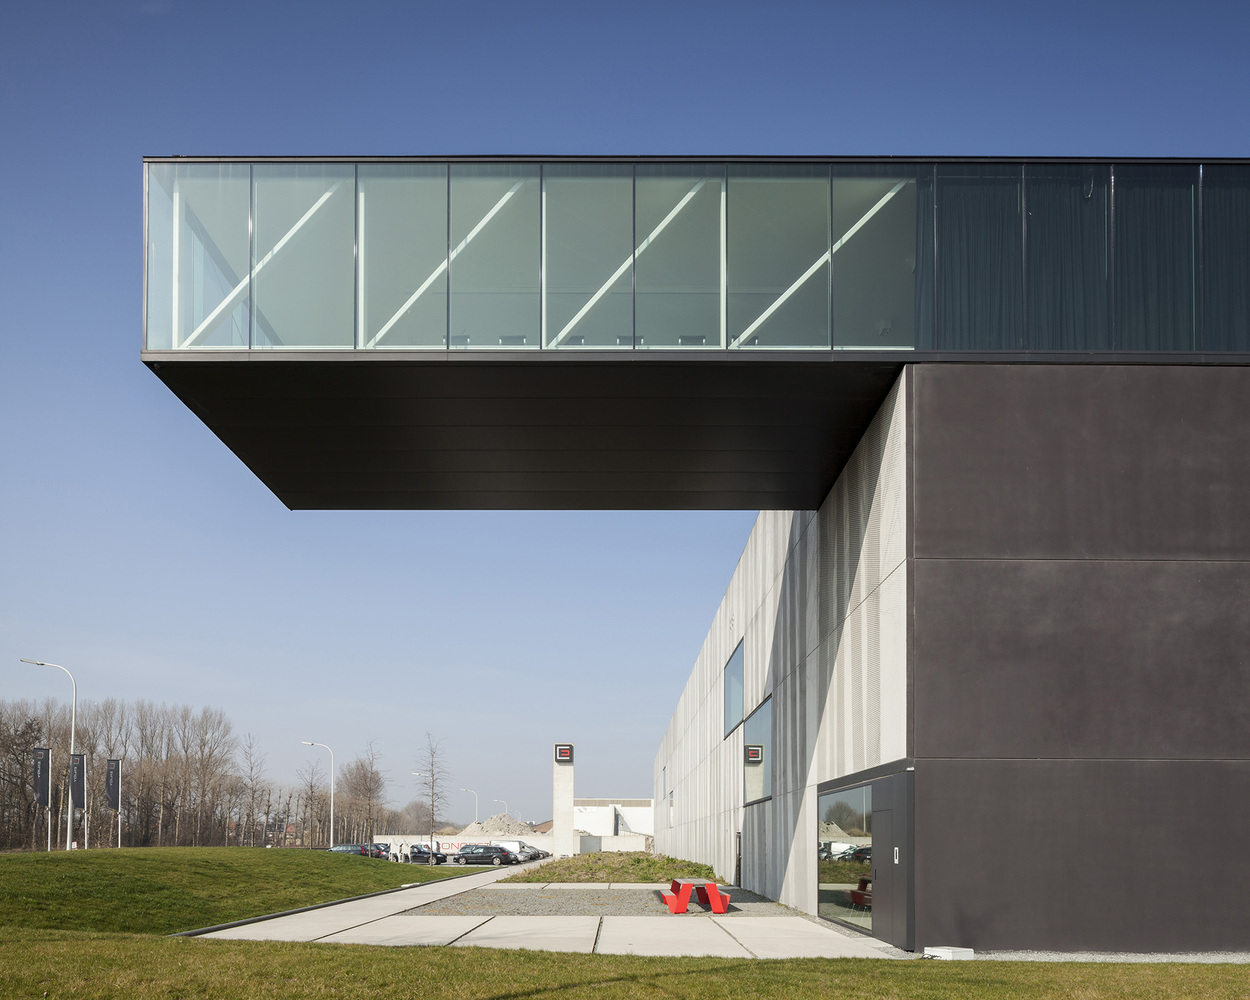 2_Enjoy Concrete HQ _Govaert & Vanhoutte Architects_Inspirationist